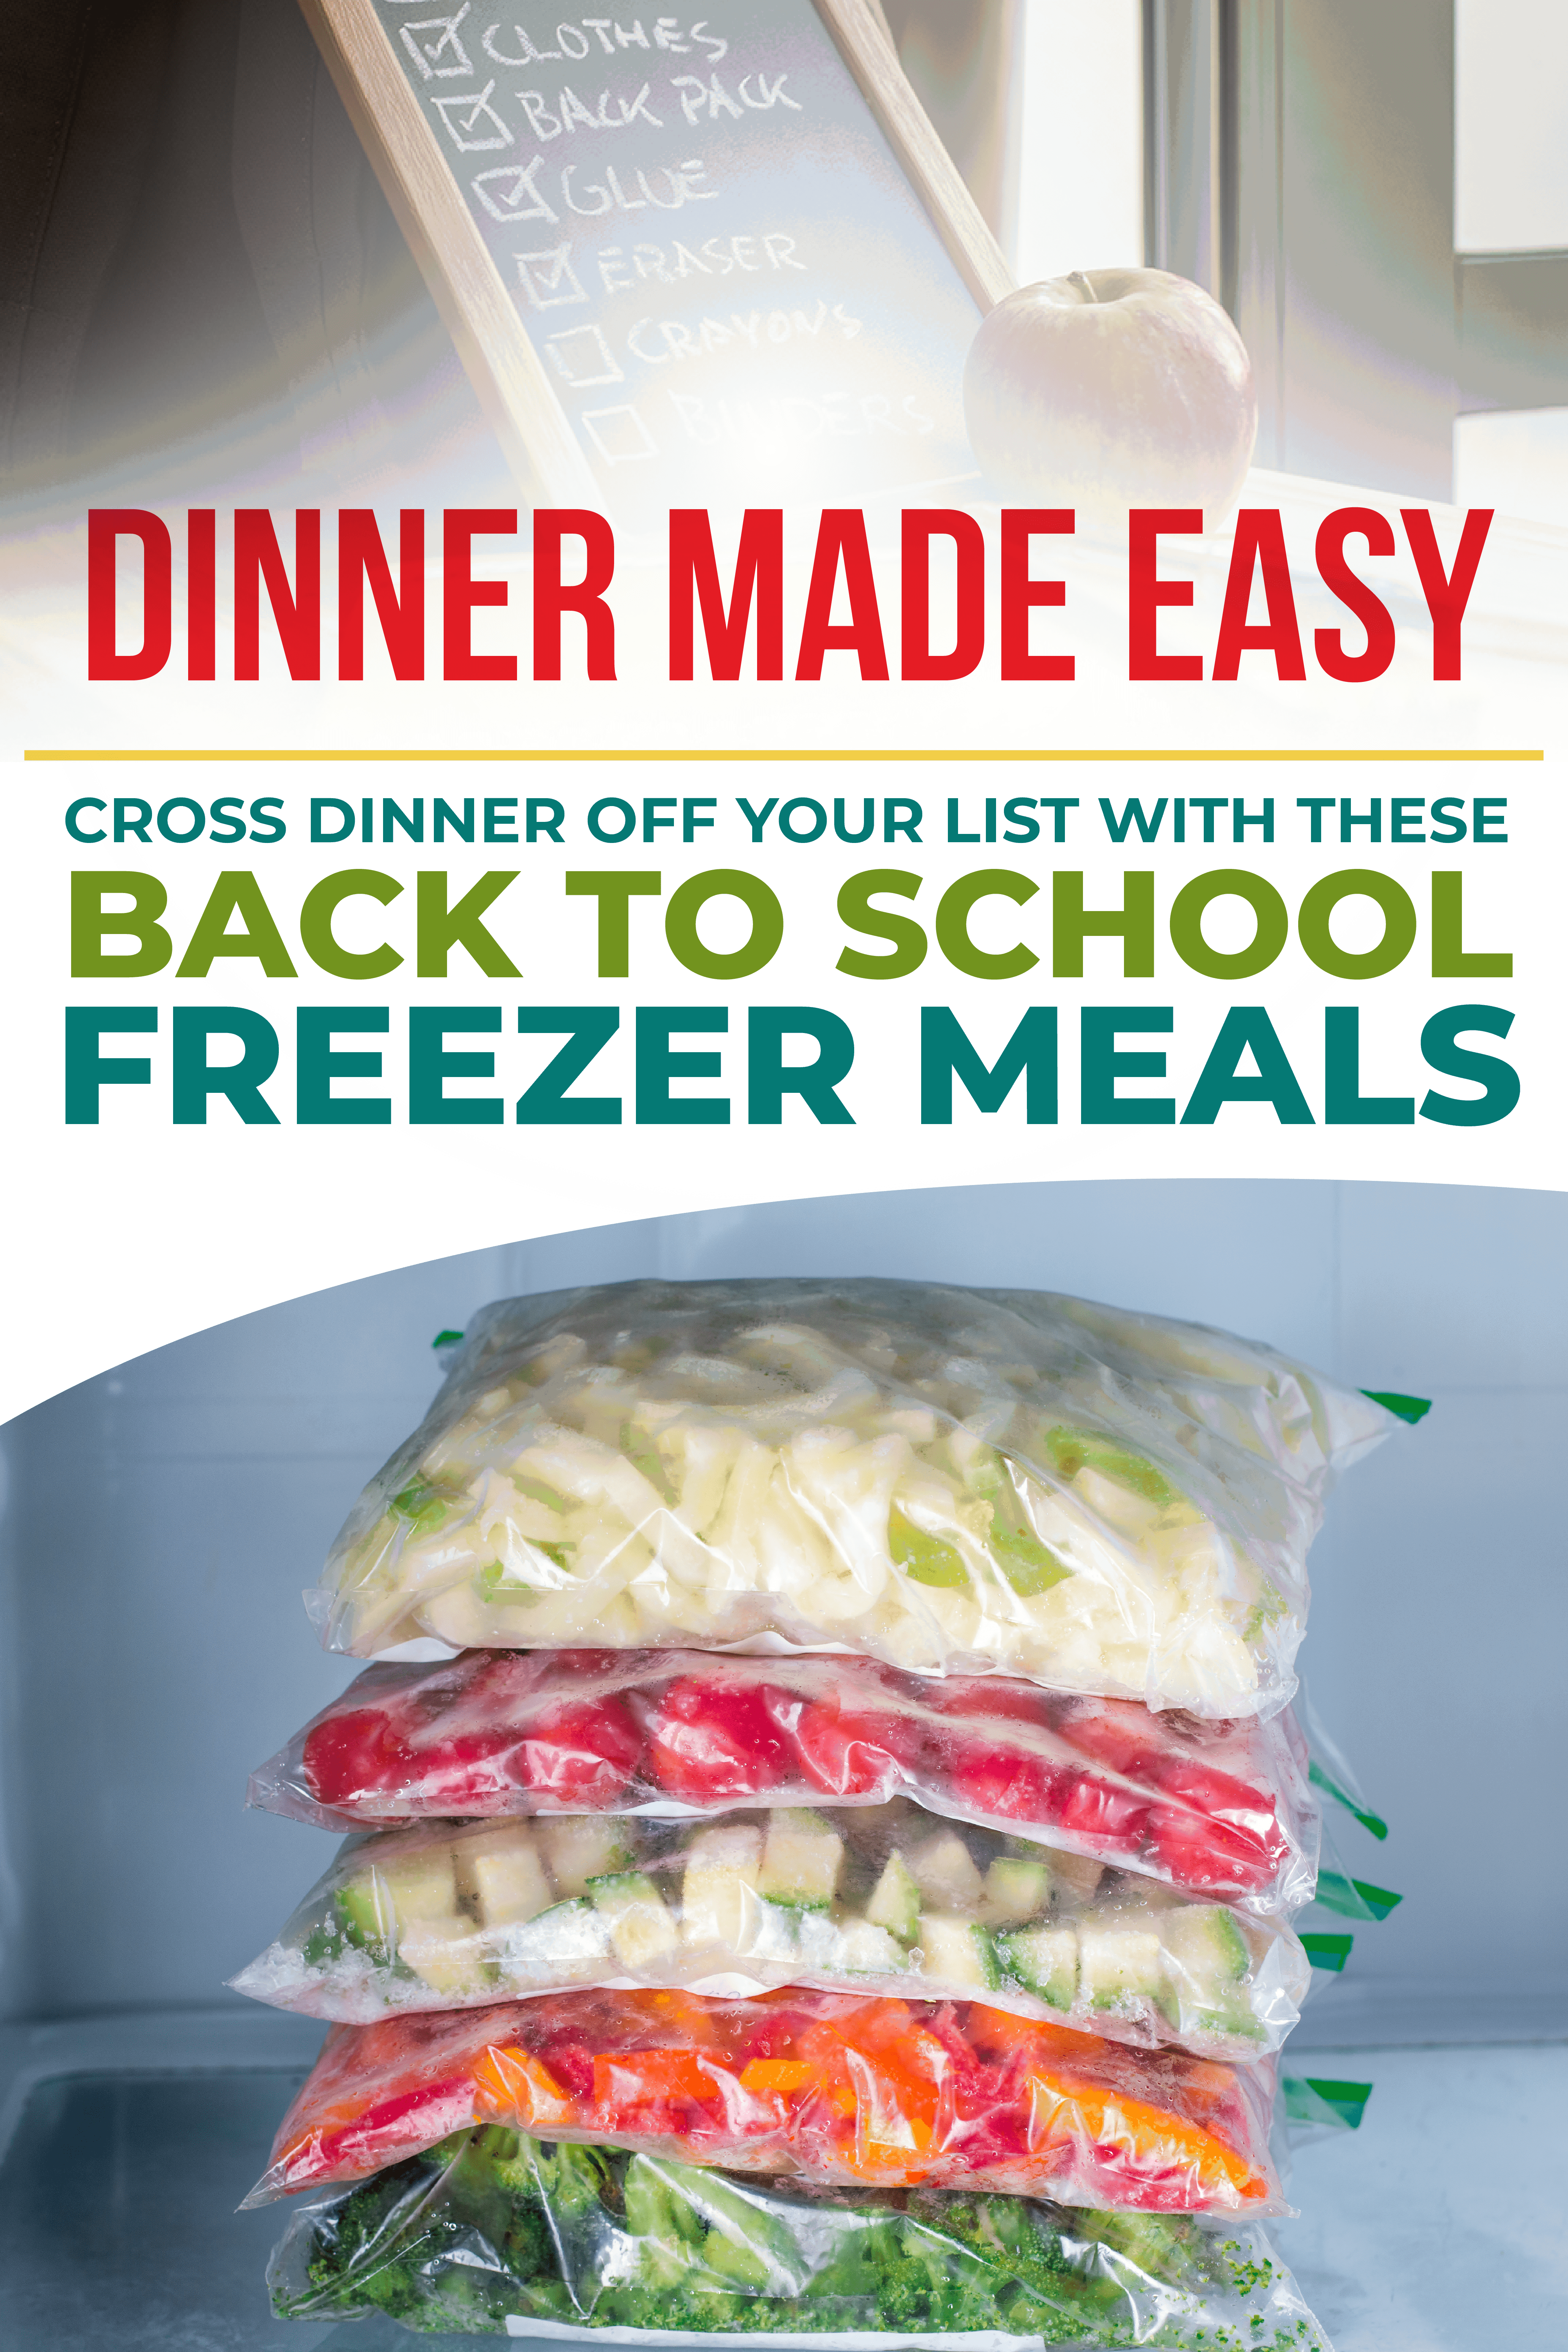 Years of dealing with the stress of getting home from work late and scrambling to thaw something out that is nutritious and delicious for the family prompted me to try something new. I decided on Freezer Meal Planning to see how much time, stress, and money it would actually save me.